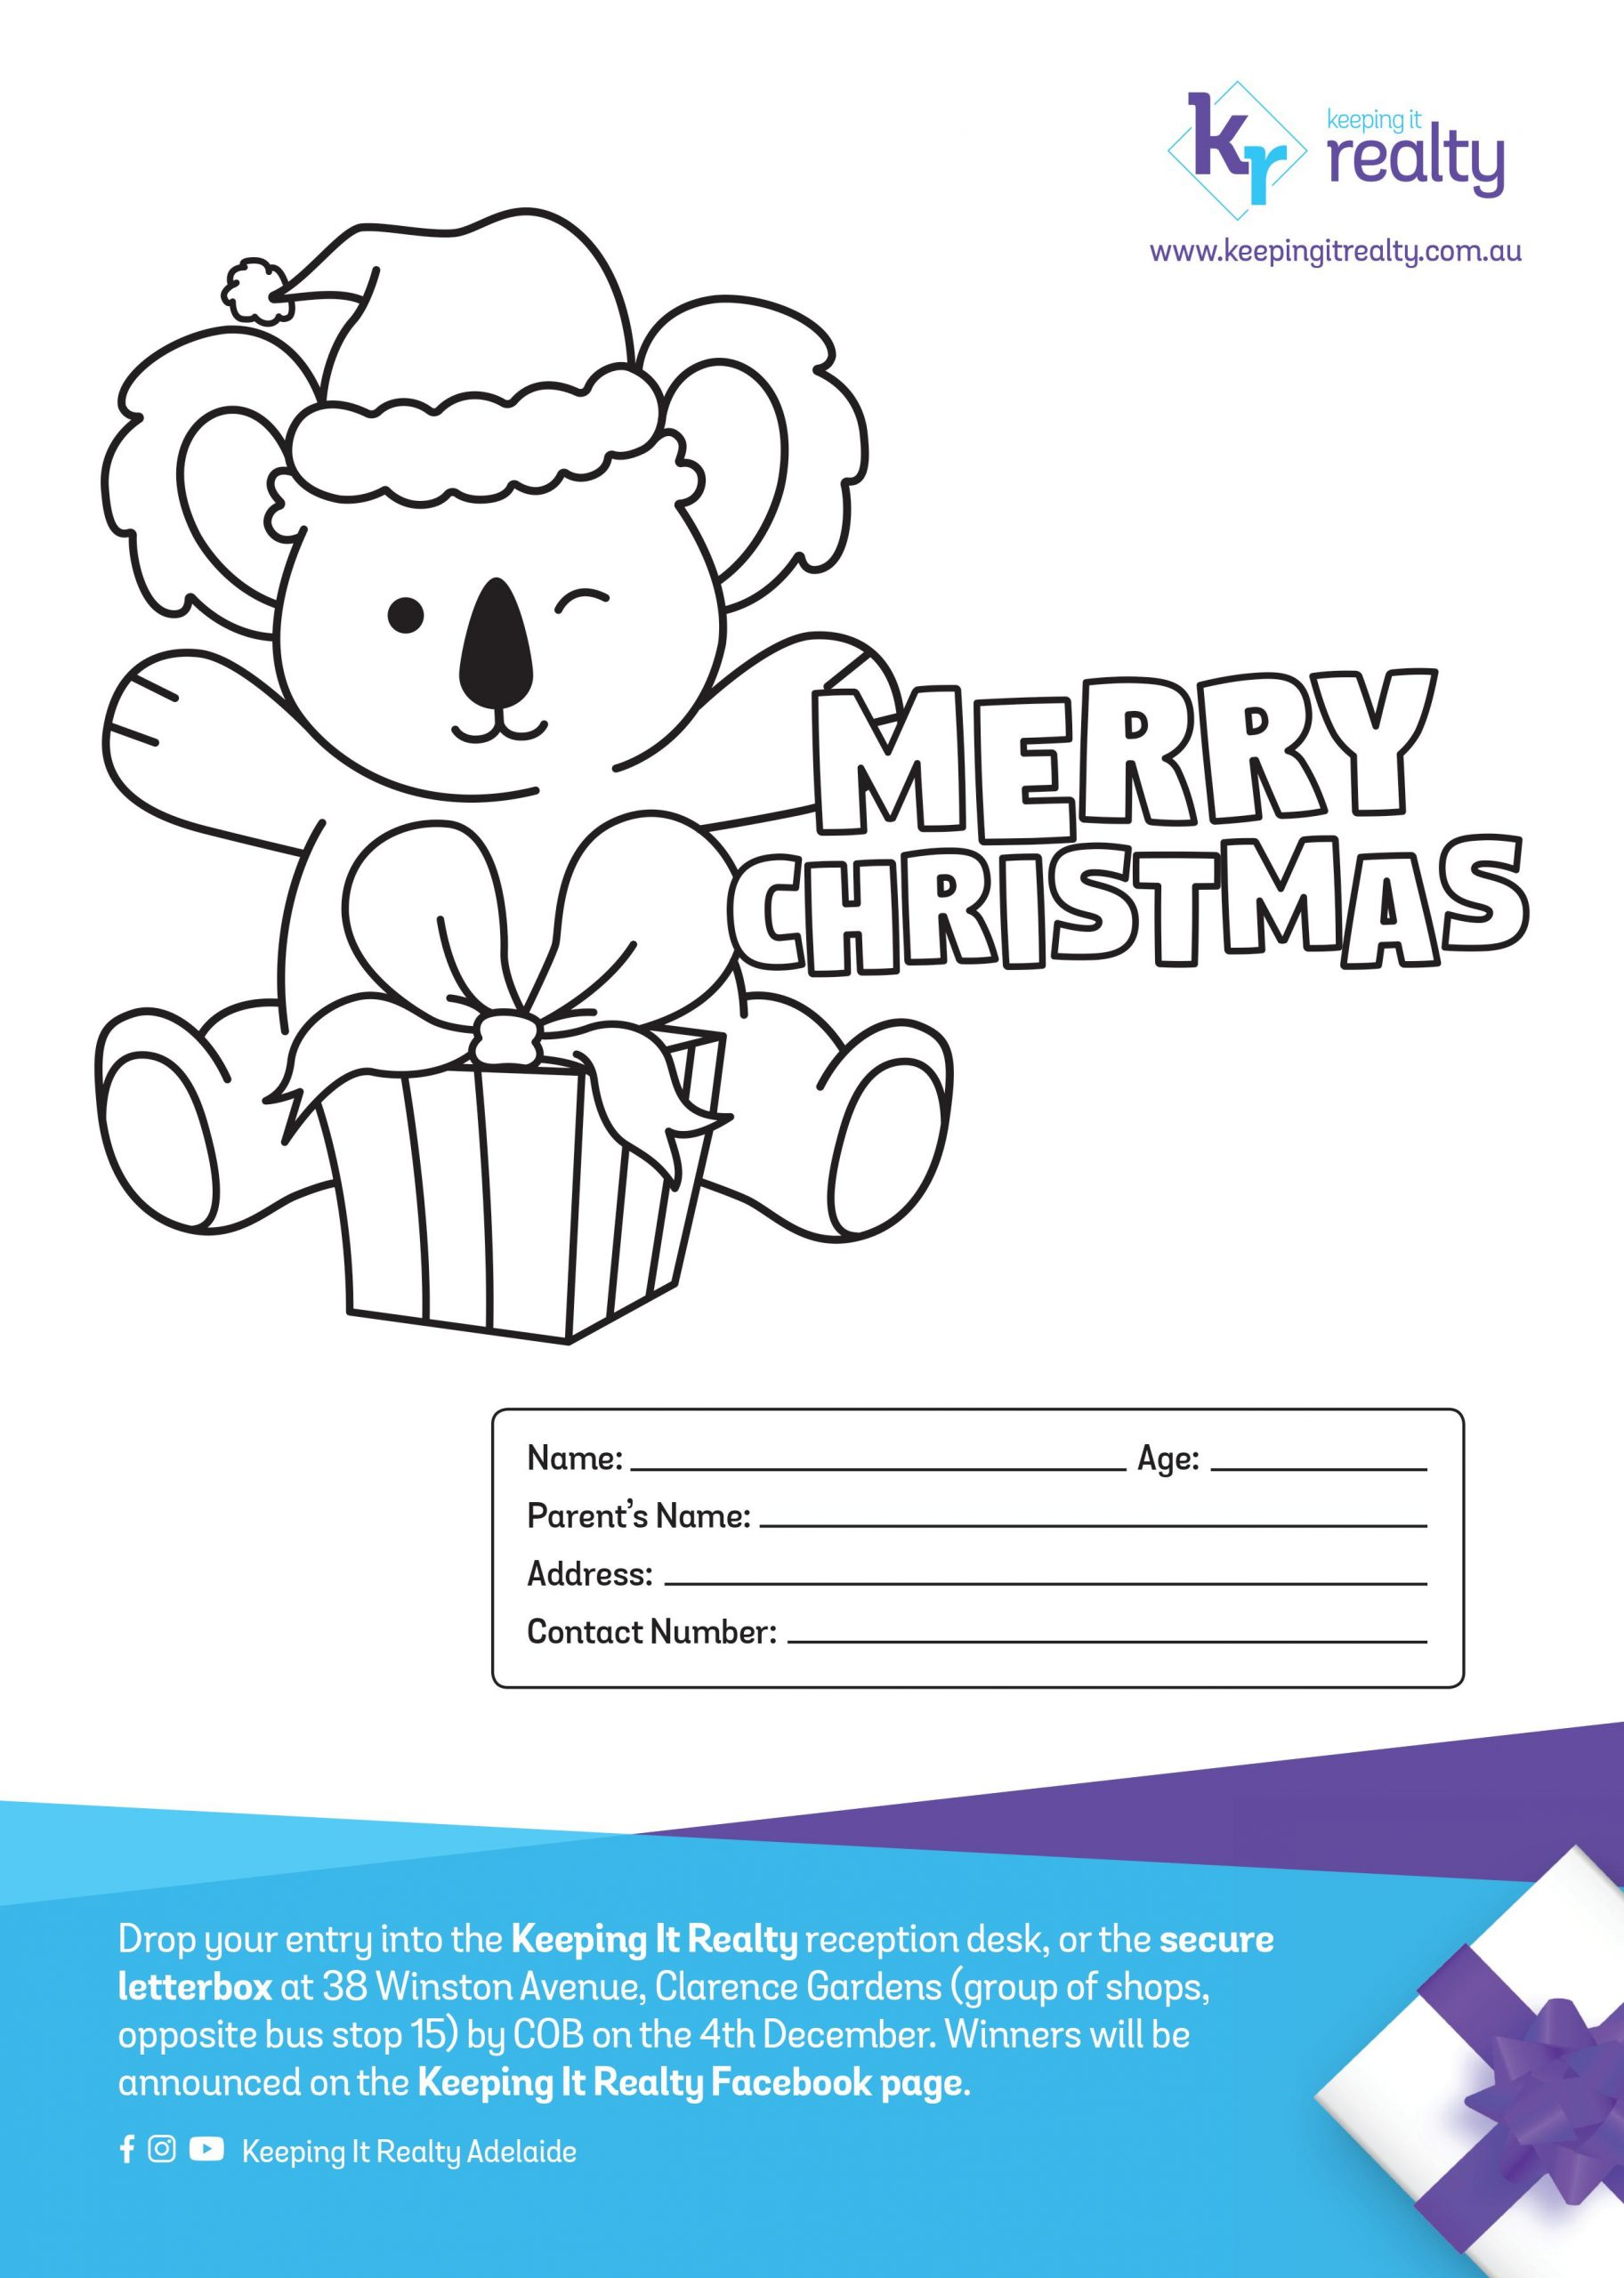 Christmas Colouring Competition 2020